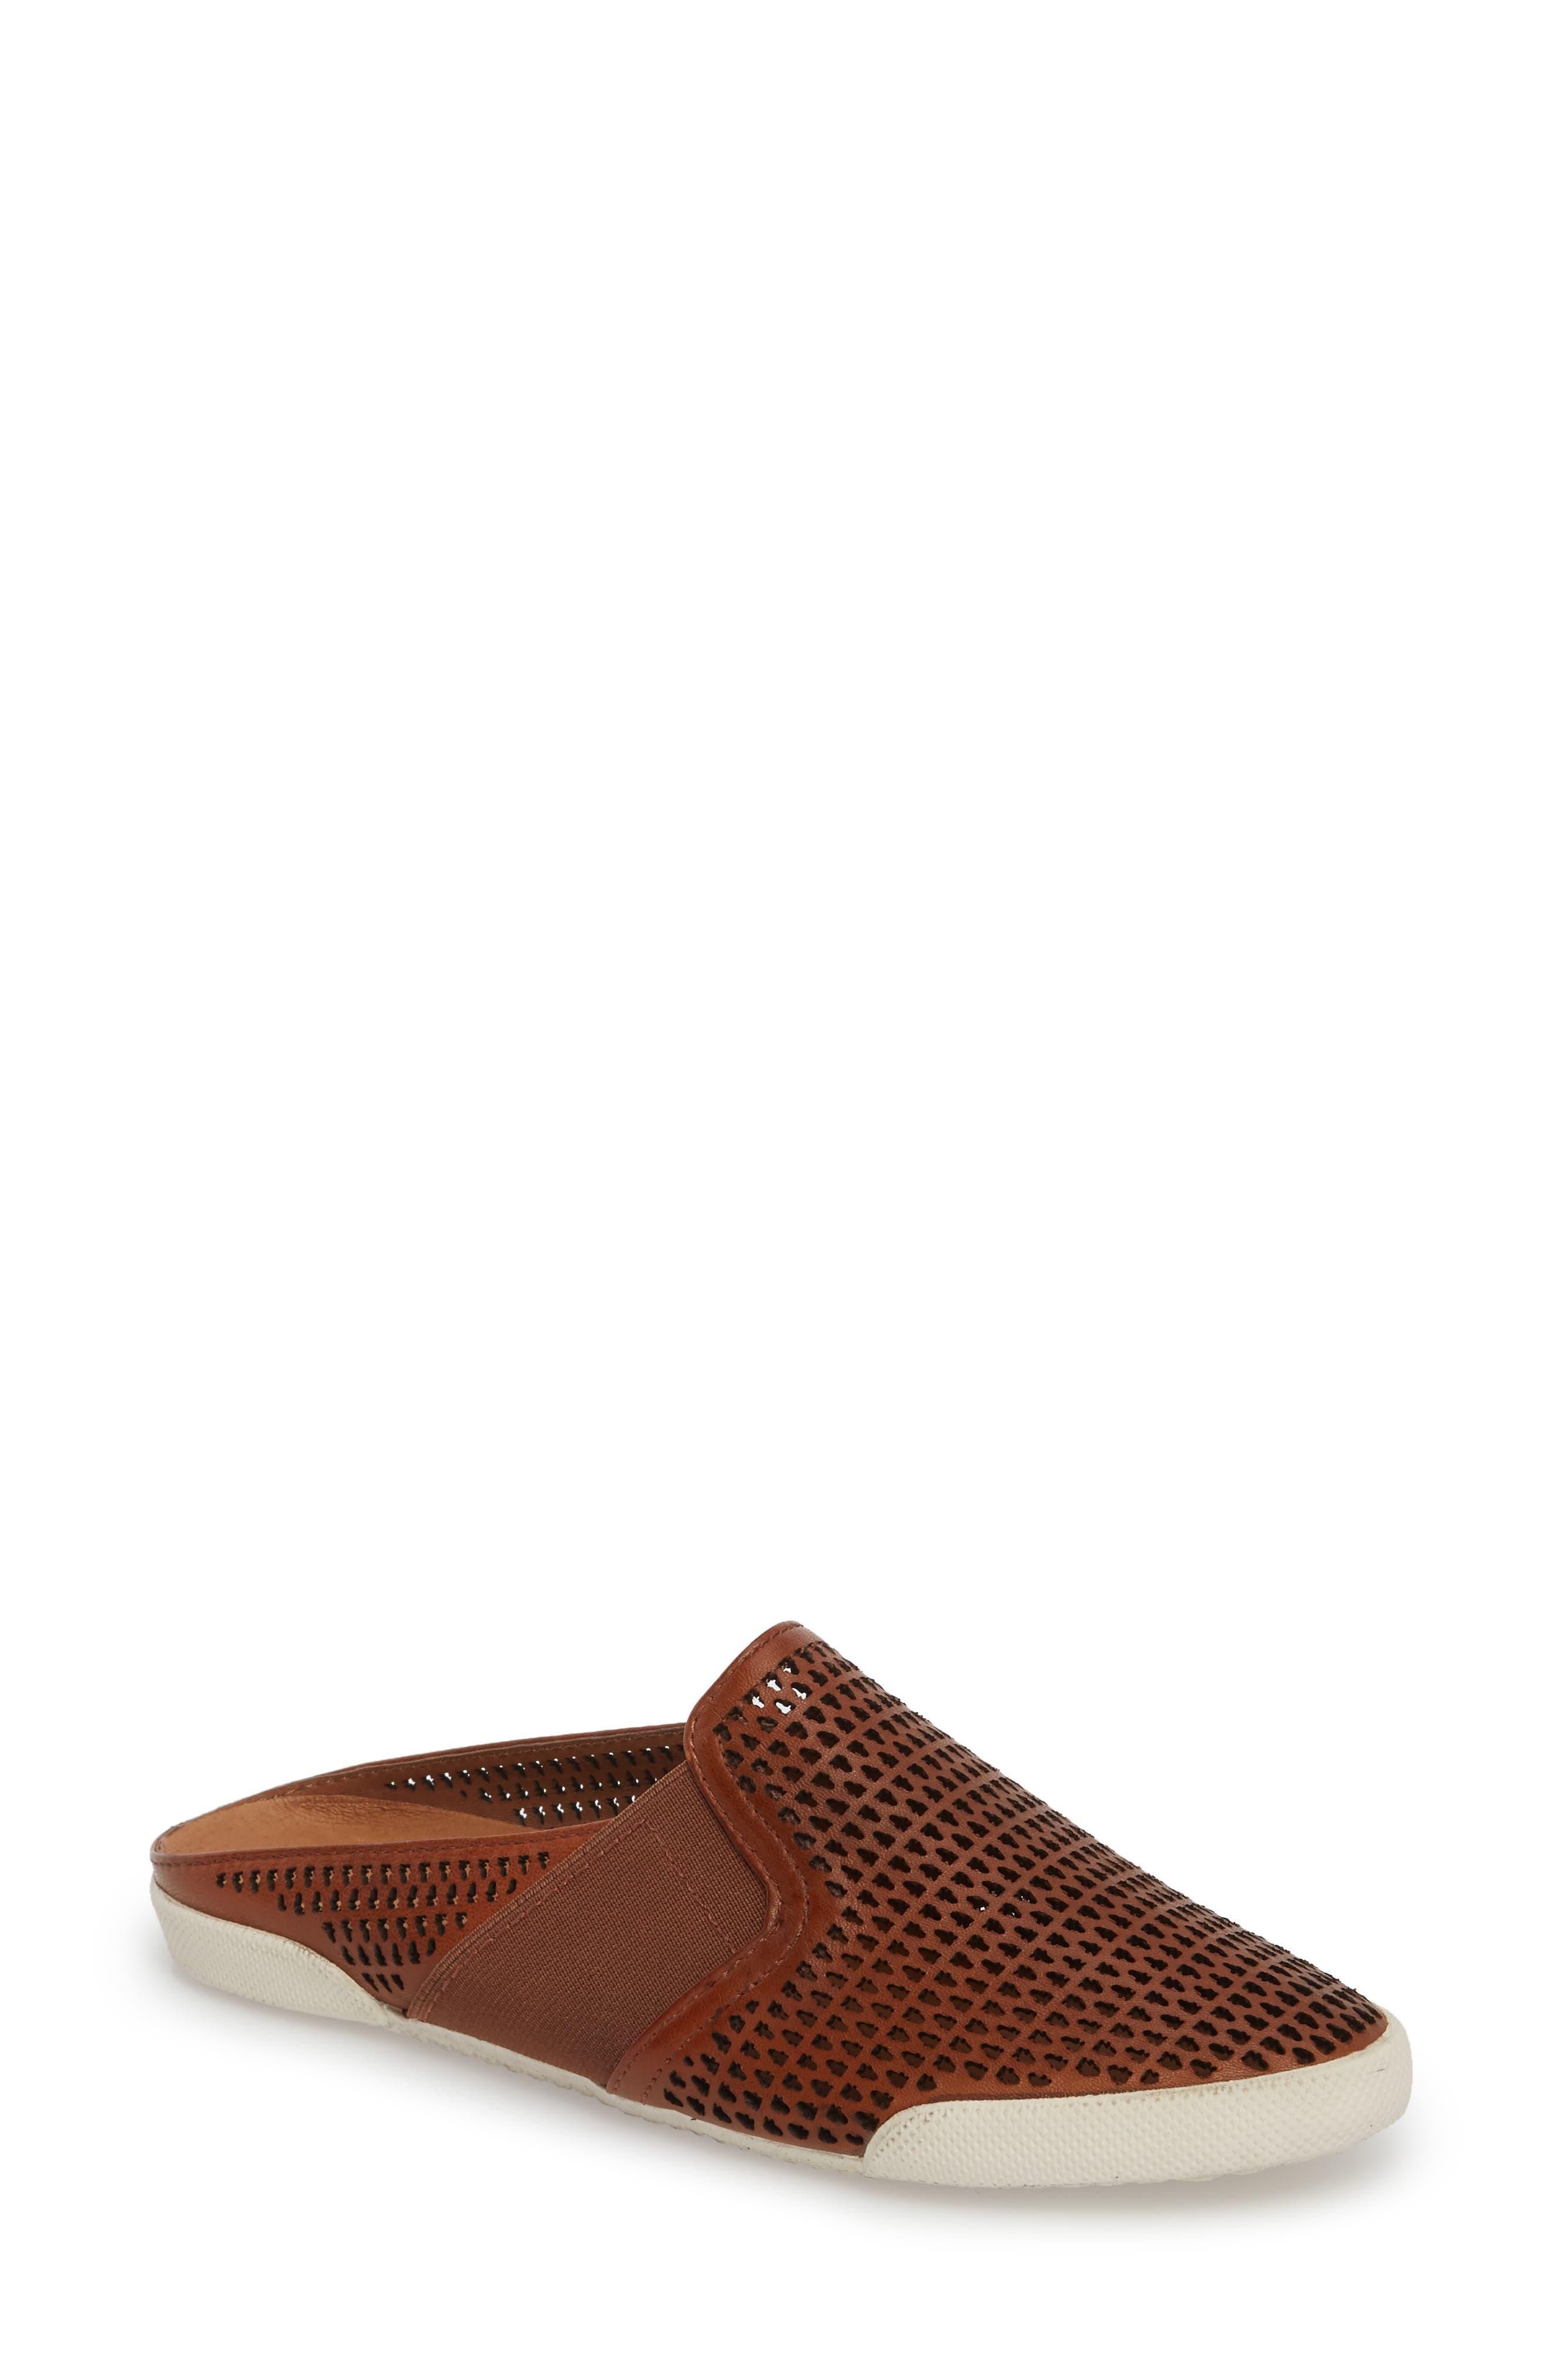 Melanie Perforated Mule,                         Main,                         color, Cognac Leather